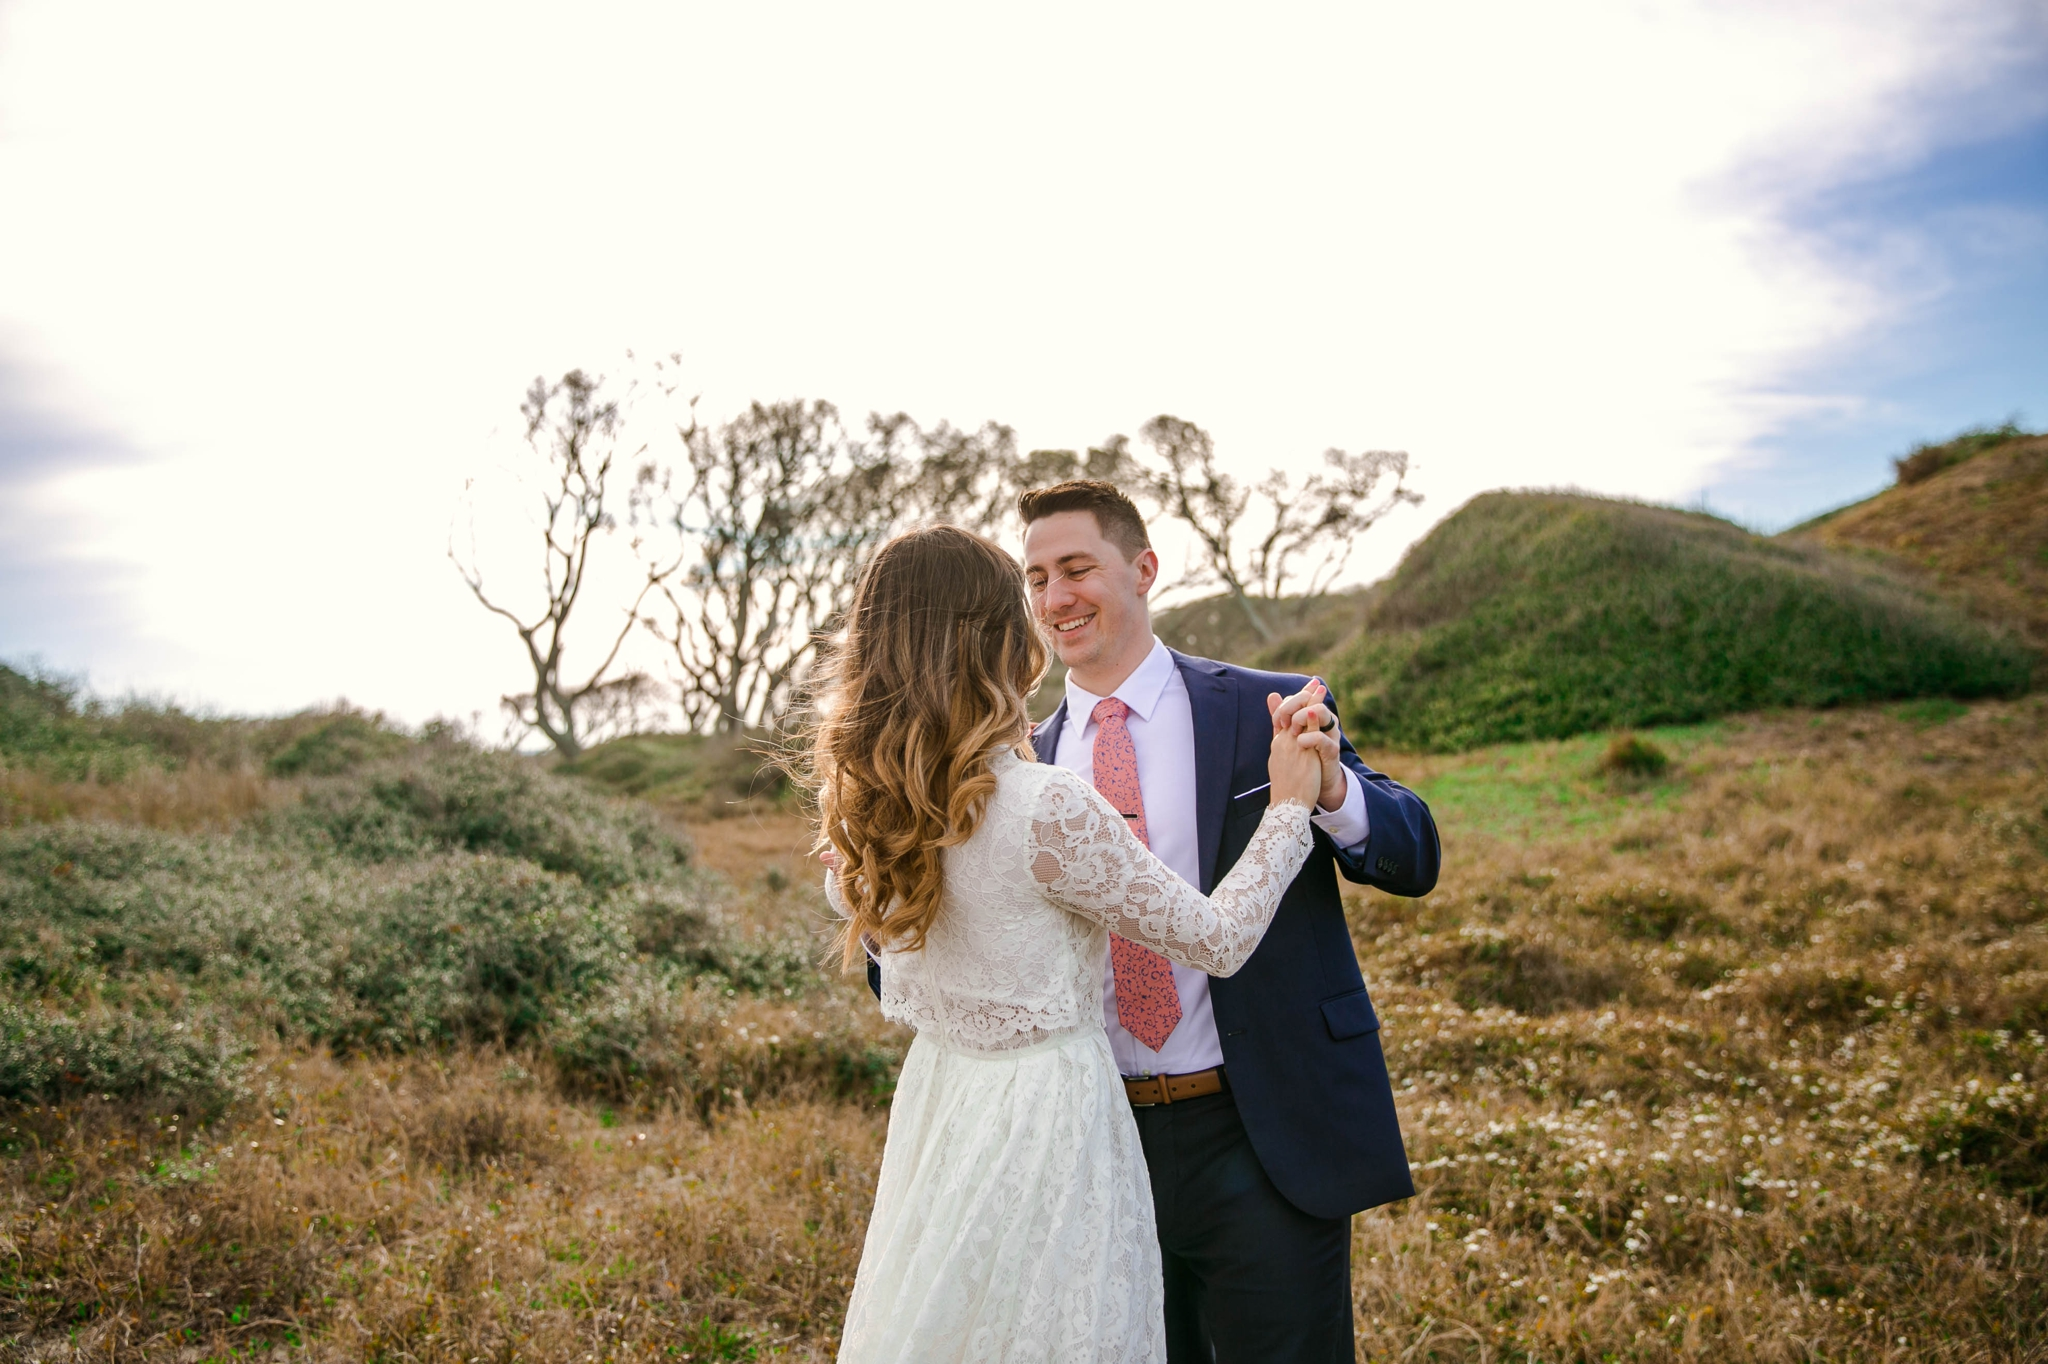 Bride and groom dancing in Lush Green Grass - Beach Elopement Photography - wedding dress by asos with purple and pink flowers and navy suit - oahu hawaii wedding photographer